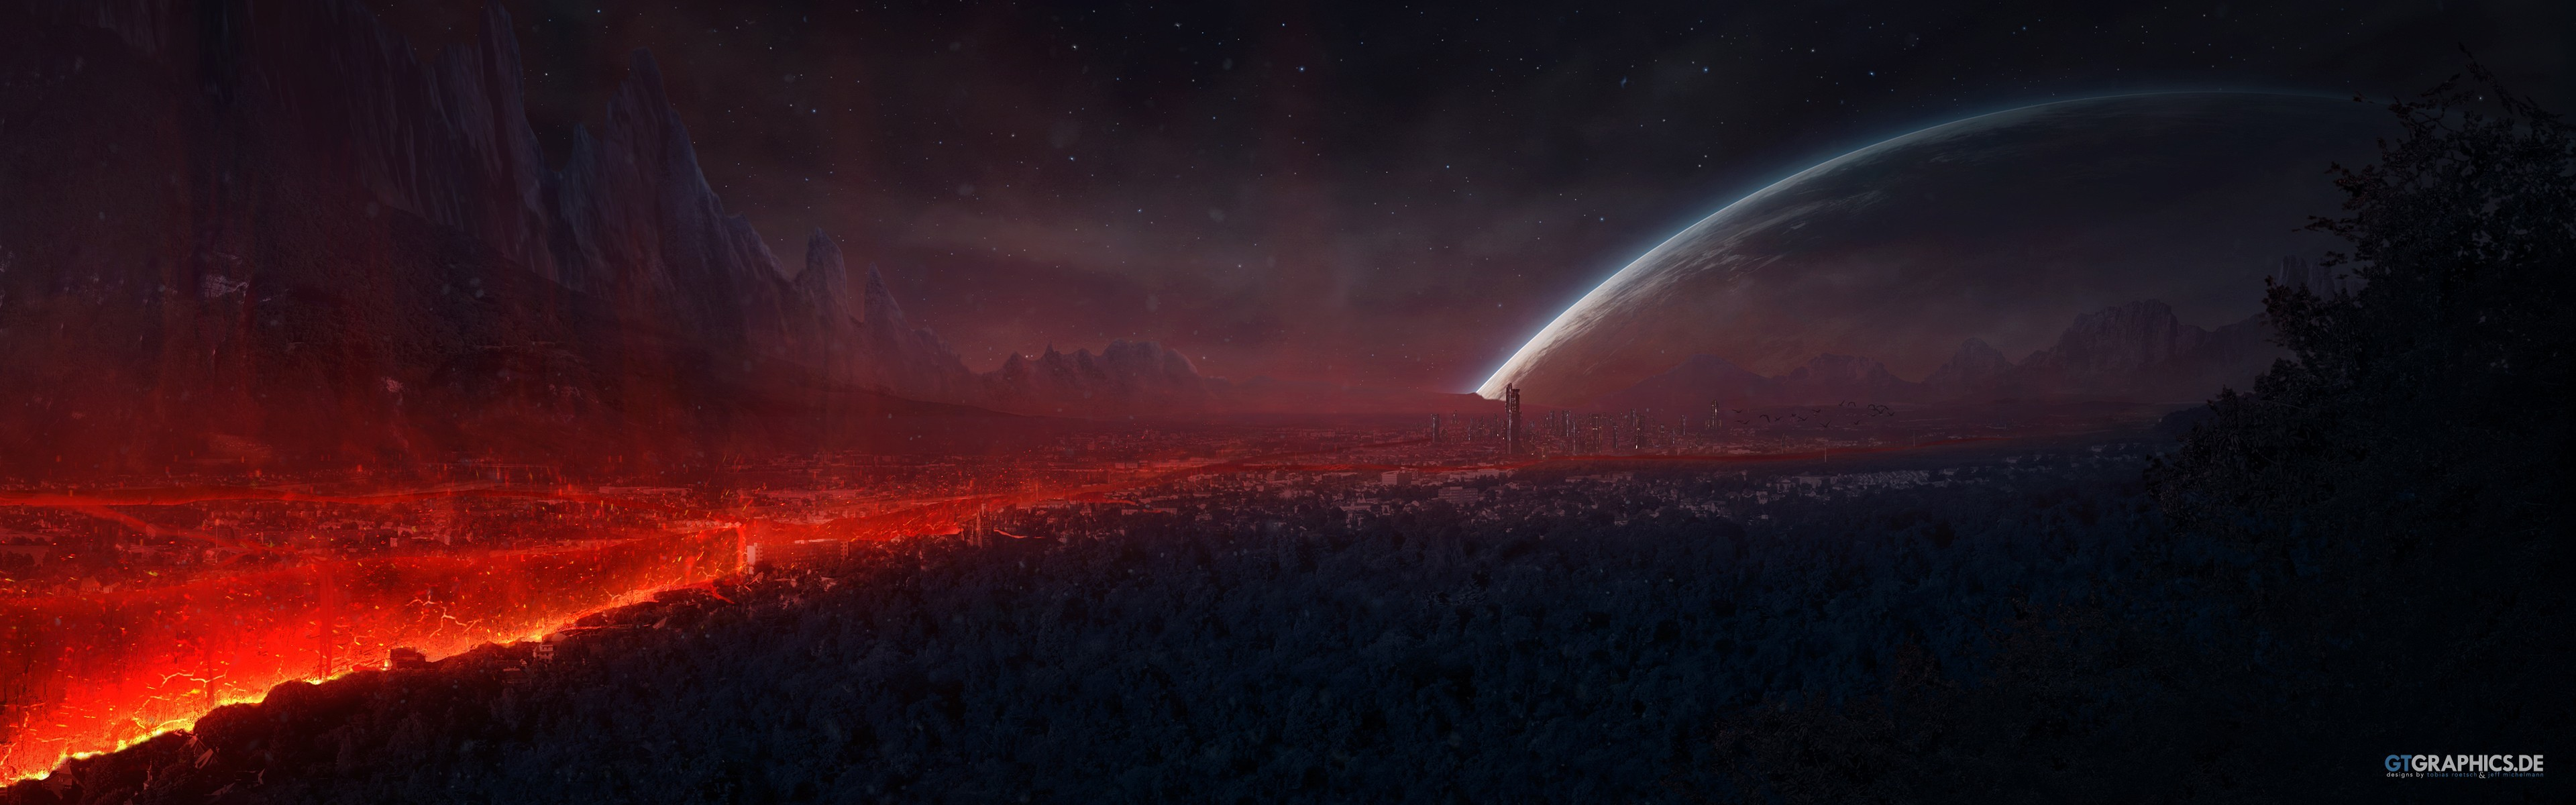 General 3840x1200 space red digital art artwork planet apocalyptic sky dark